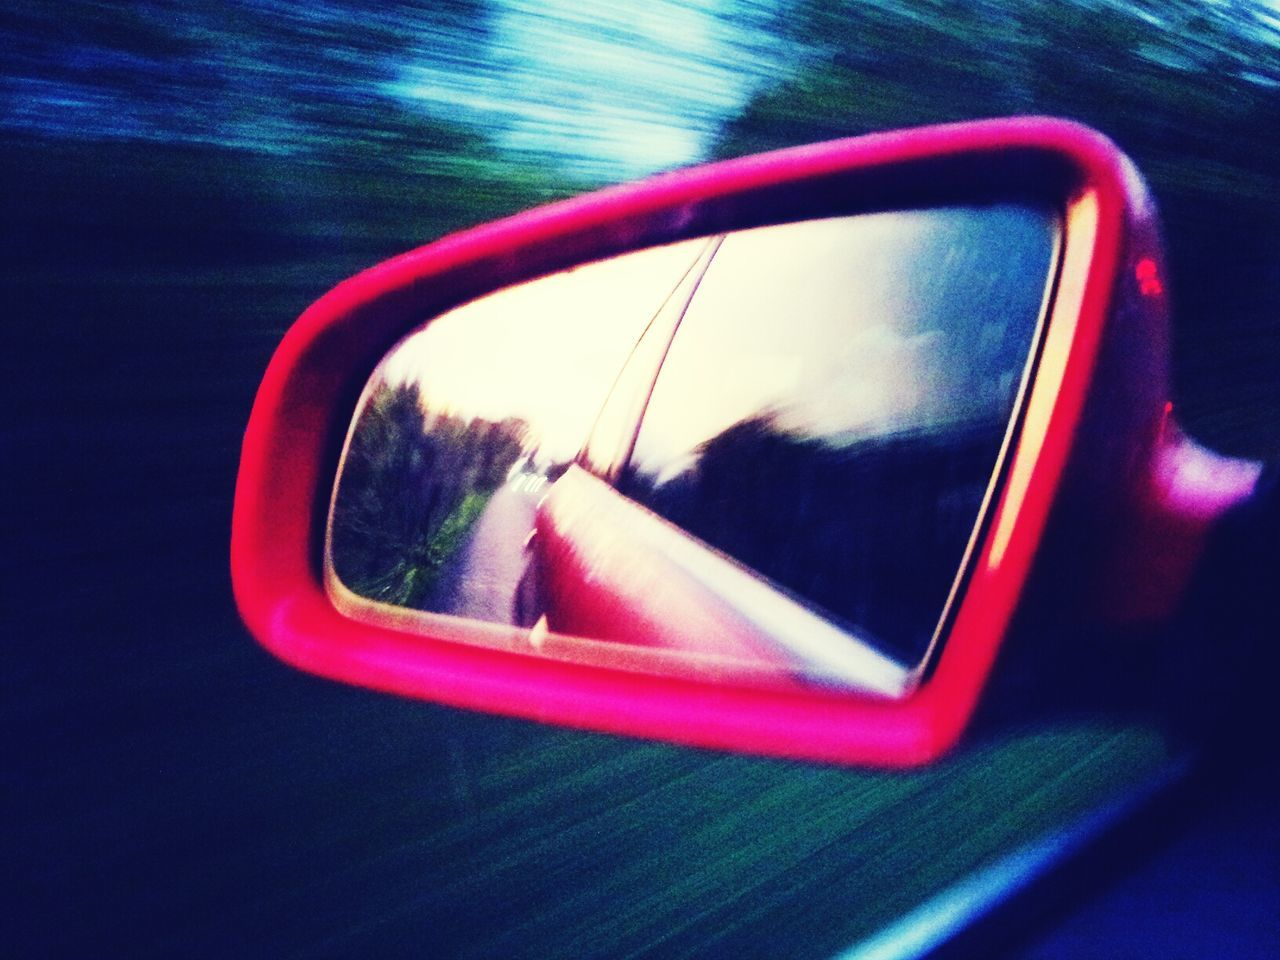 side-view mirror, transportation, car, reflection, land vehicle, road, mode of transport, no people, vehicle mirror, car interior, day, close-up, road trip, outdoors, water, nature, tree, sky